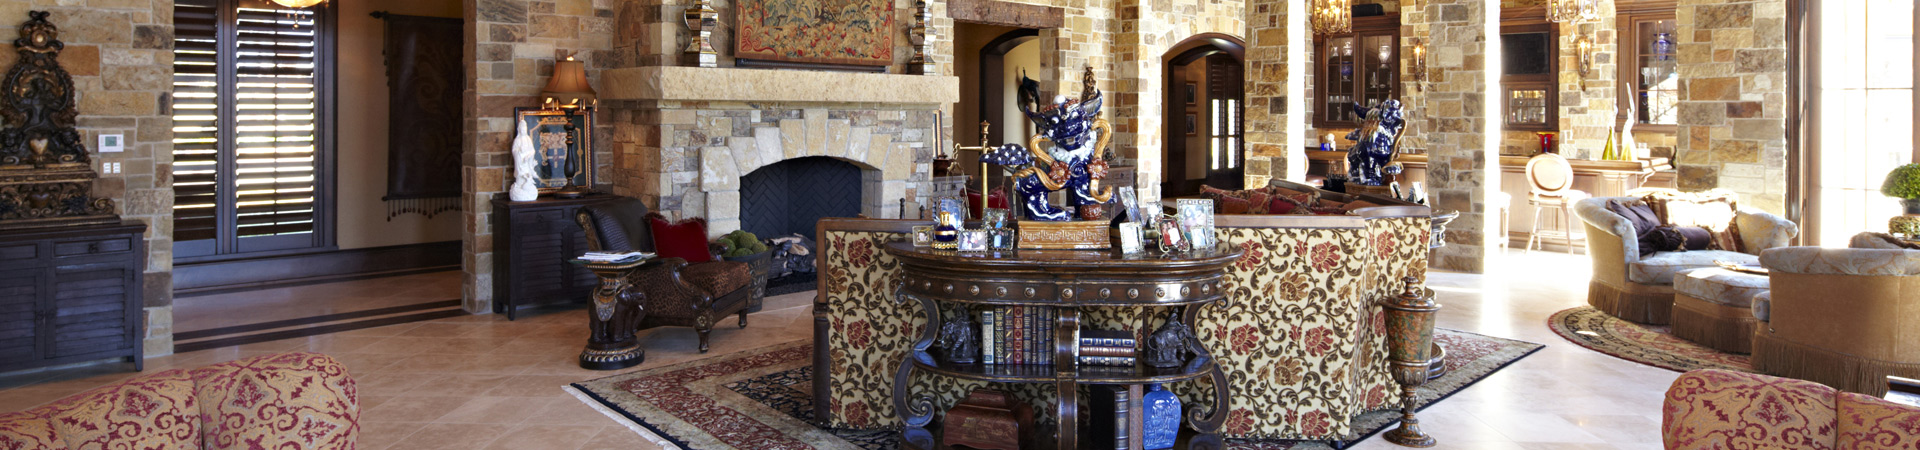 If you are searching luxury home builder in Tyler Texas, Sam Vercher team can help you